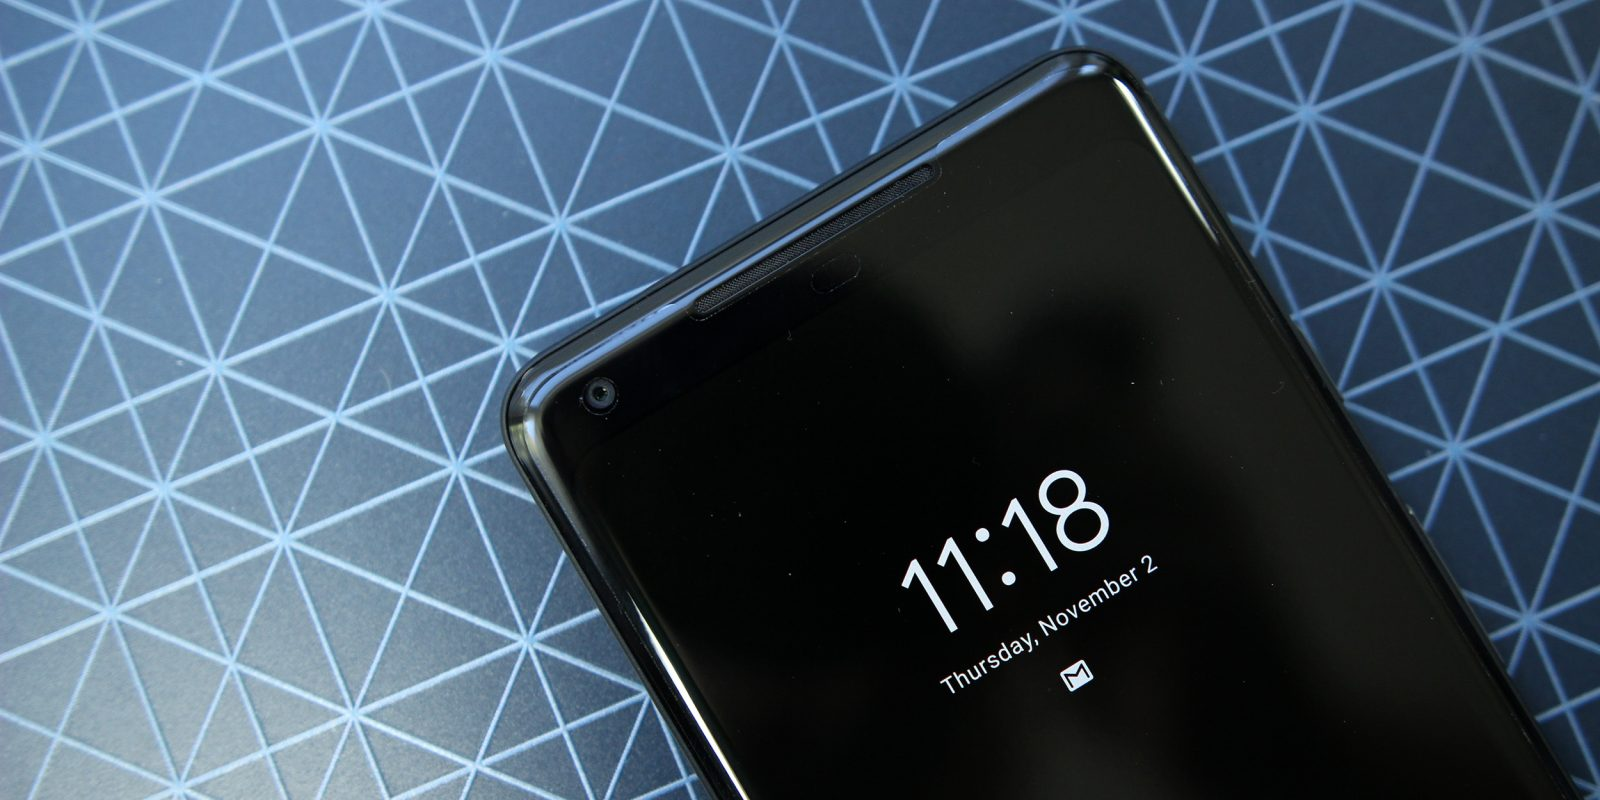 Google Pixel 2 XL will pick up proximity sensor bug fix 'in the coming months'